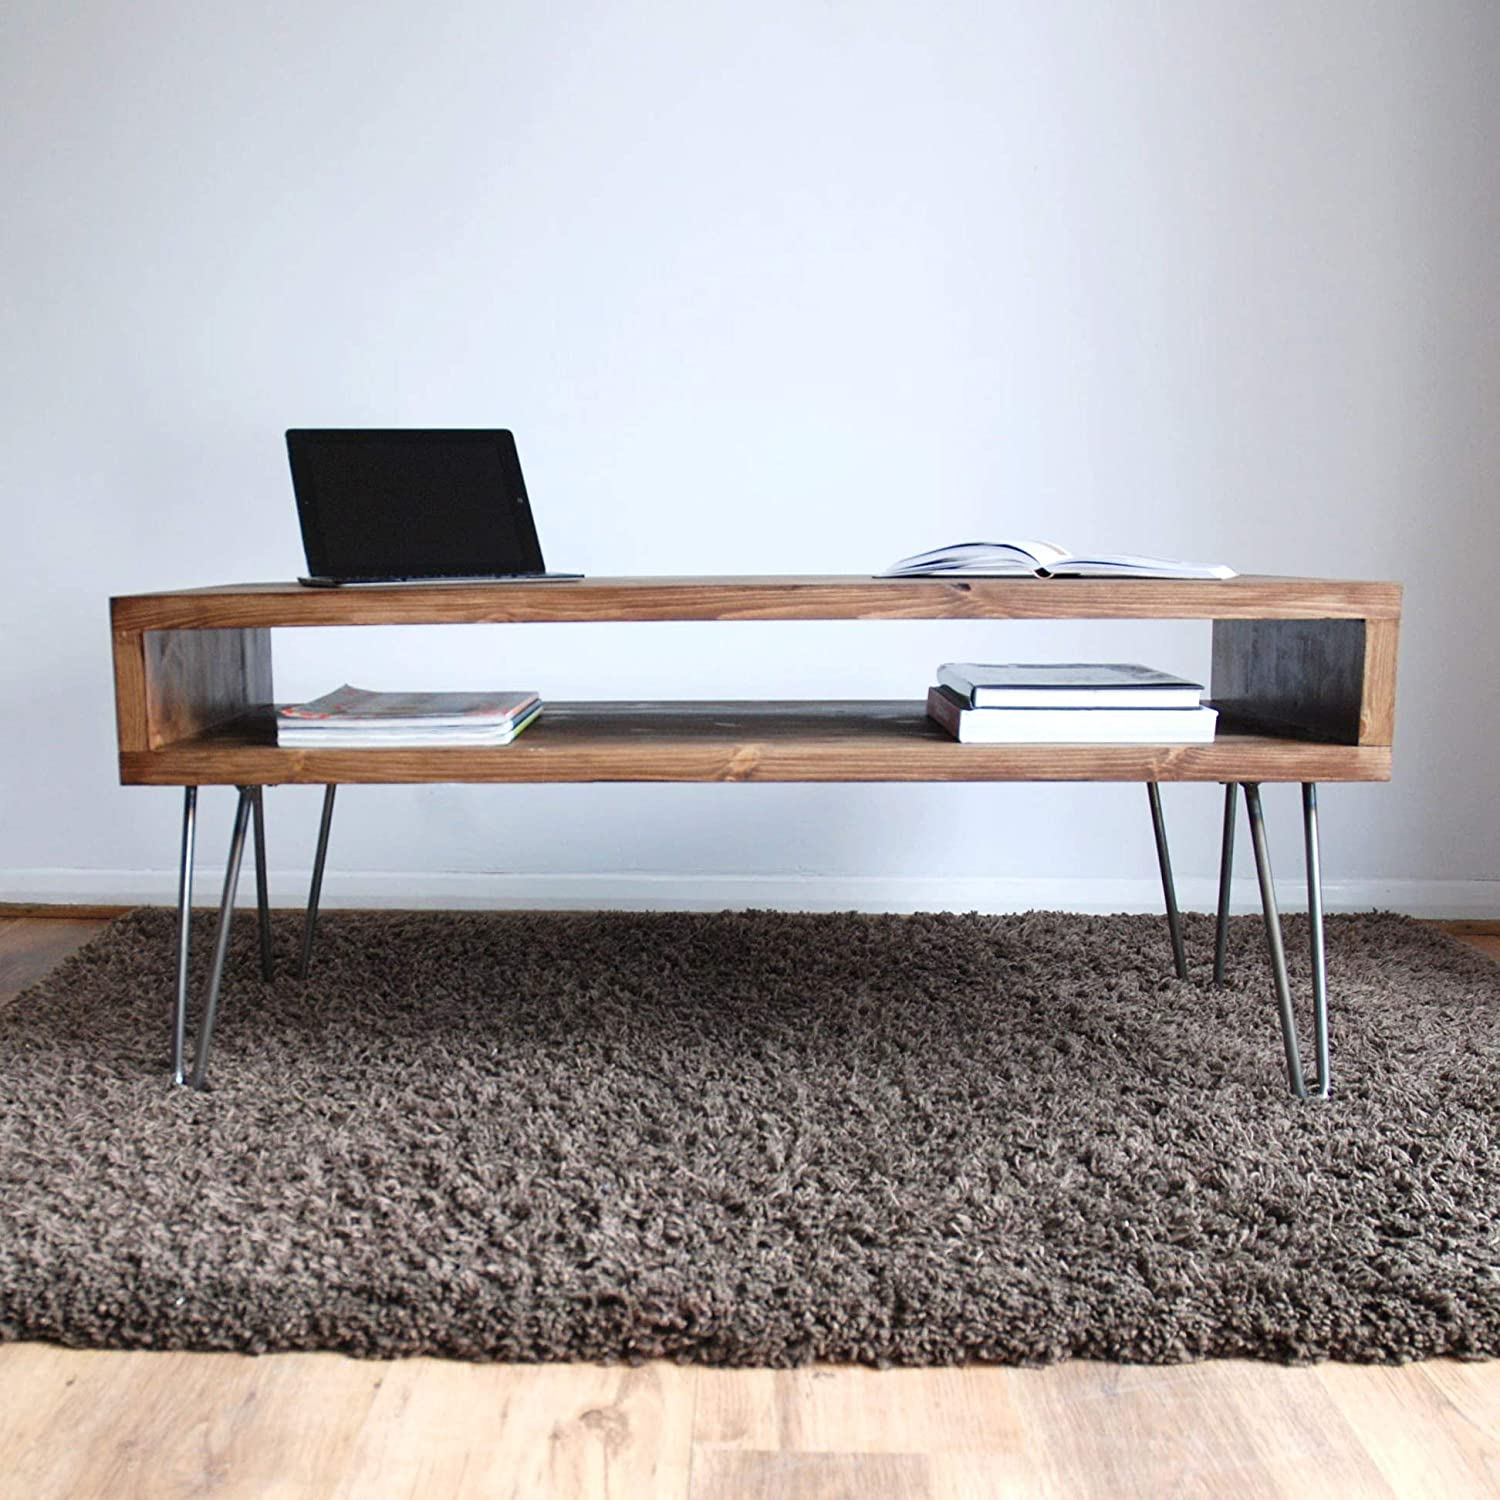 - Retro Box Coffee Table With Metal Hairpin Legs - Solid Wood